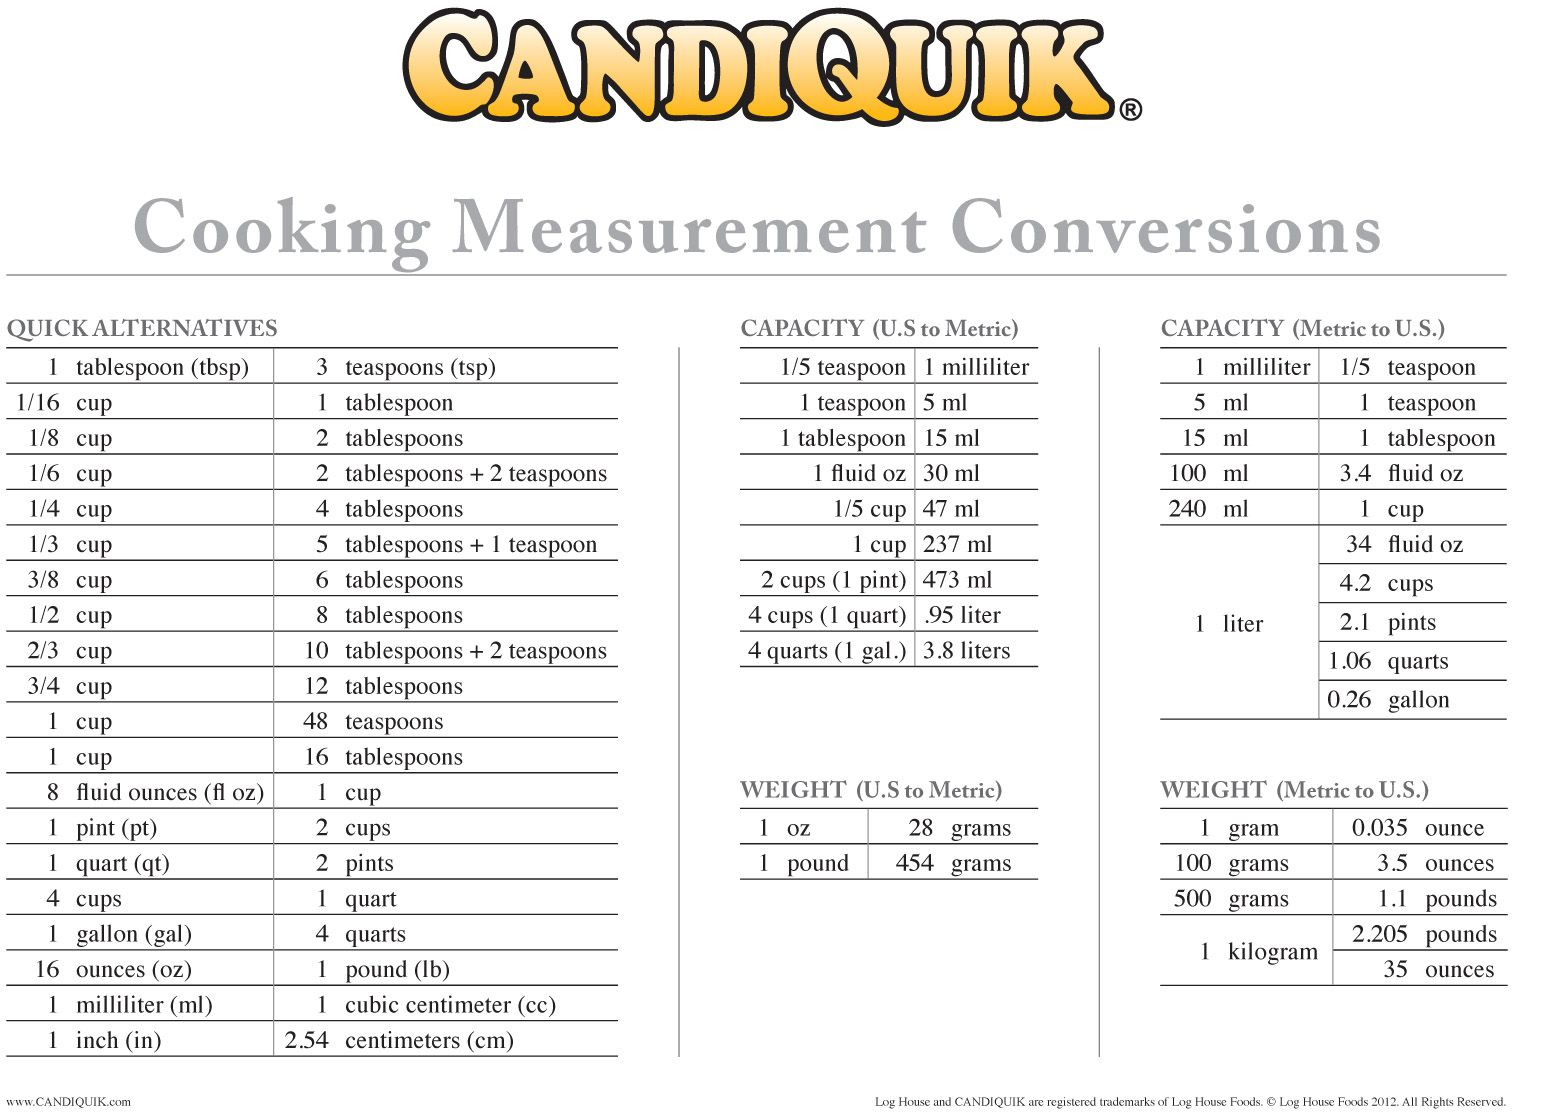 Uncategorized Recipe Conversion Worksheet free printables measurement conversion chart cooking cake pop ideas etc from candiquik